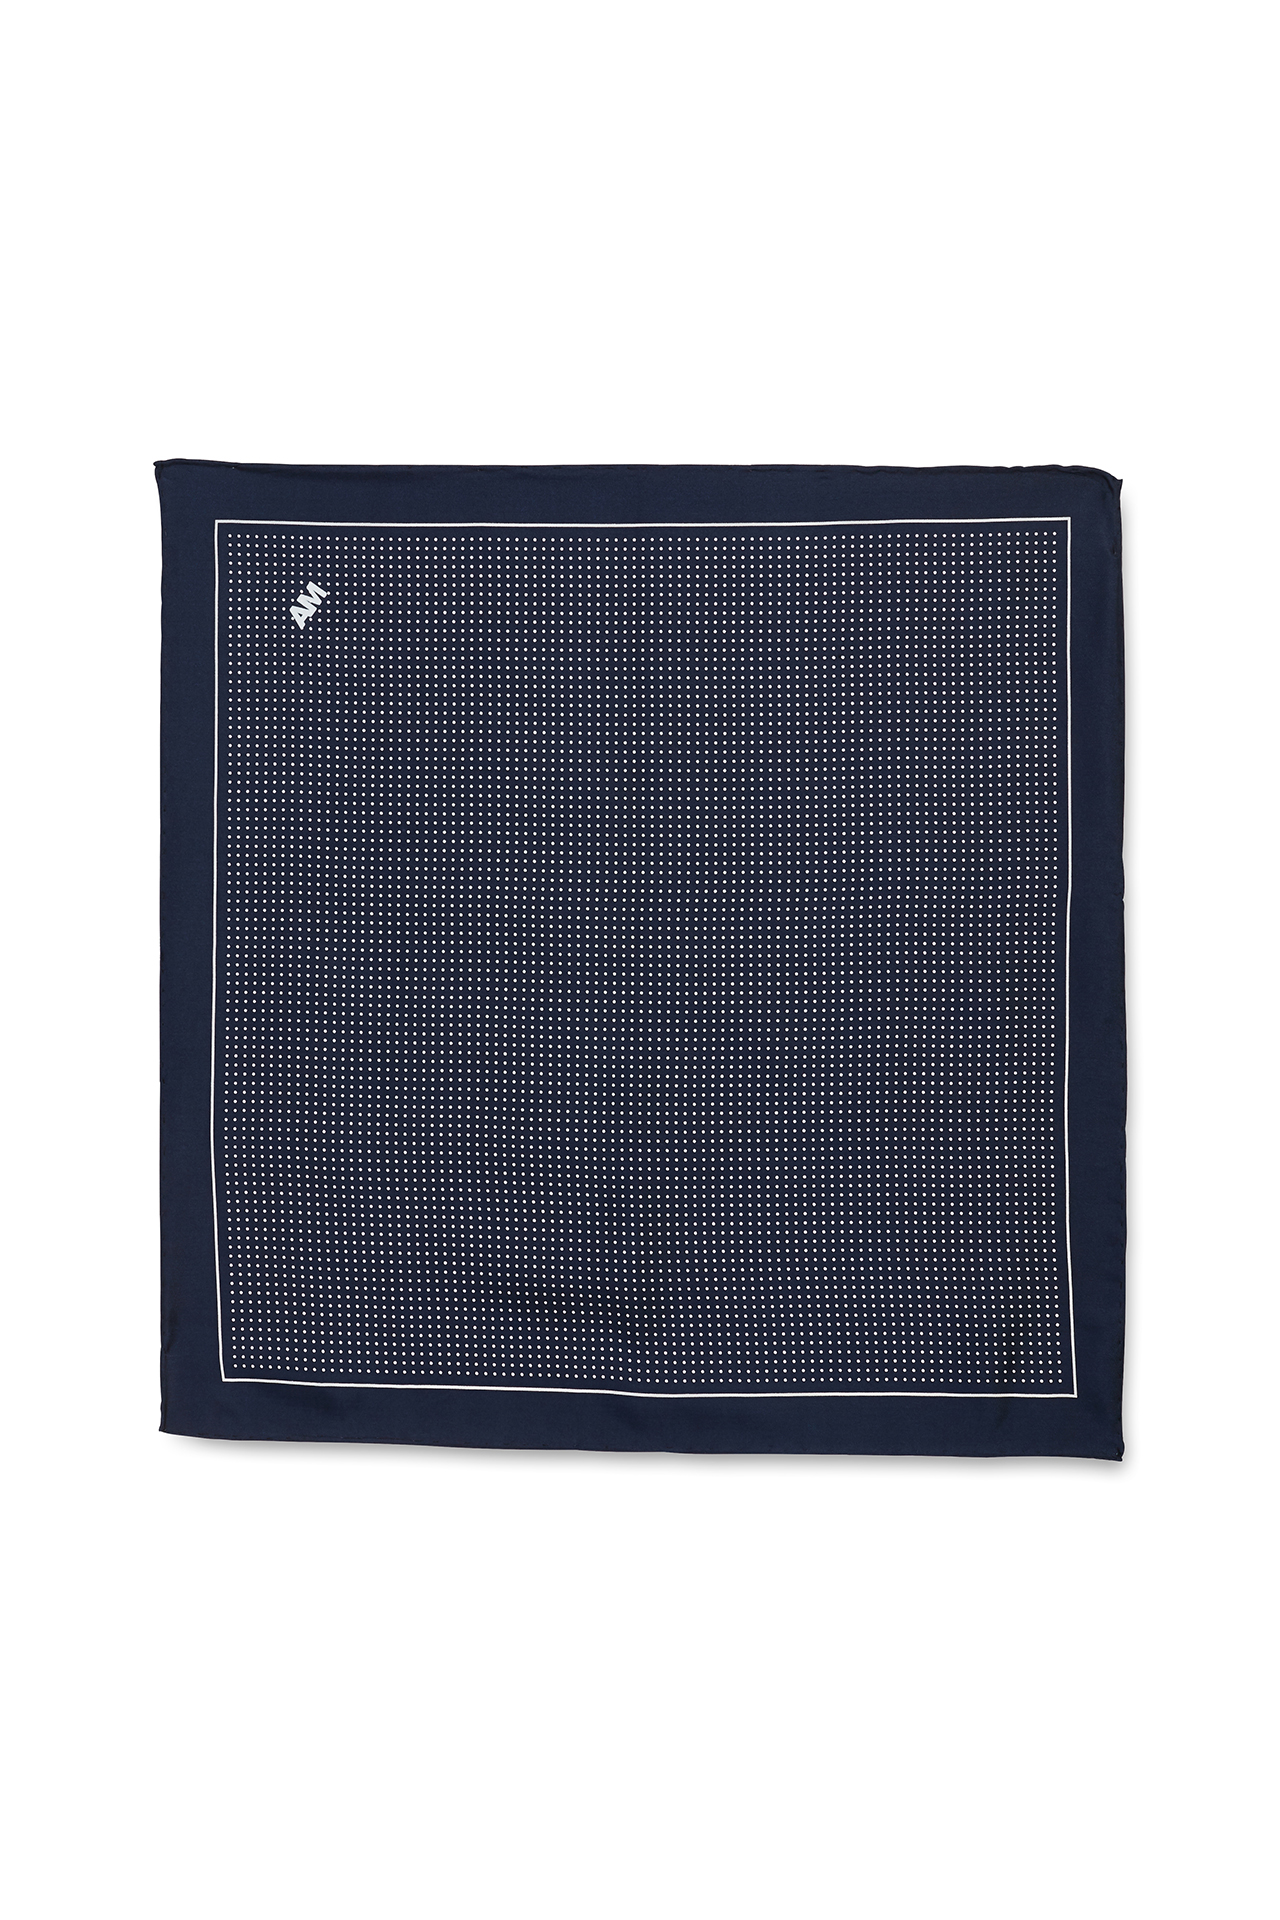 White Polka Dot on Navy Pocket Square